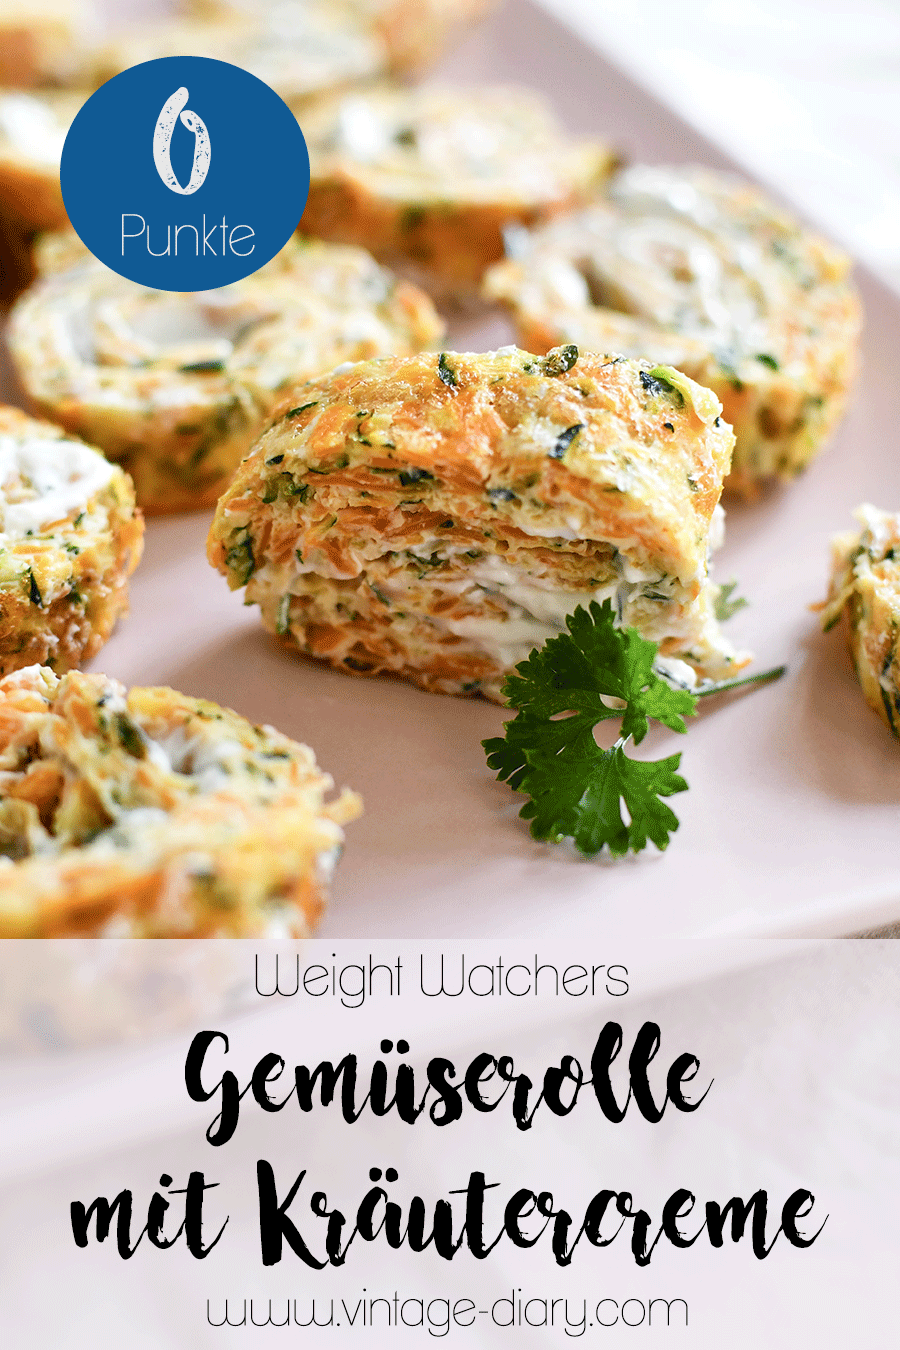 Gemüserolle mit Kräutercreme (Weight Watchers)